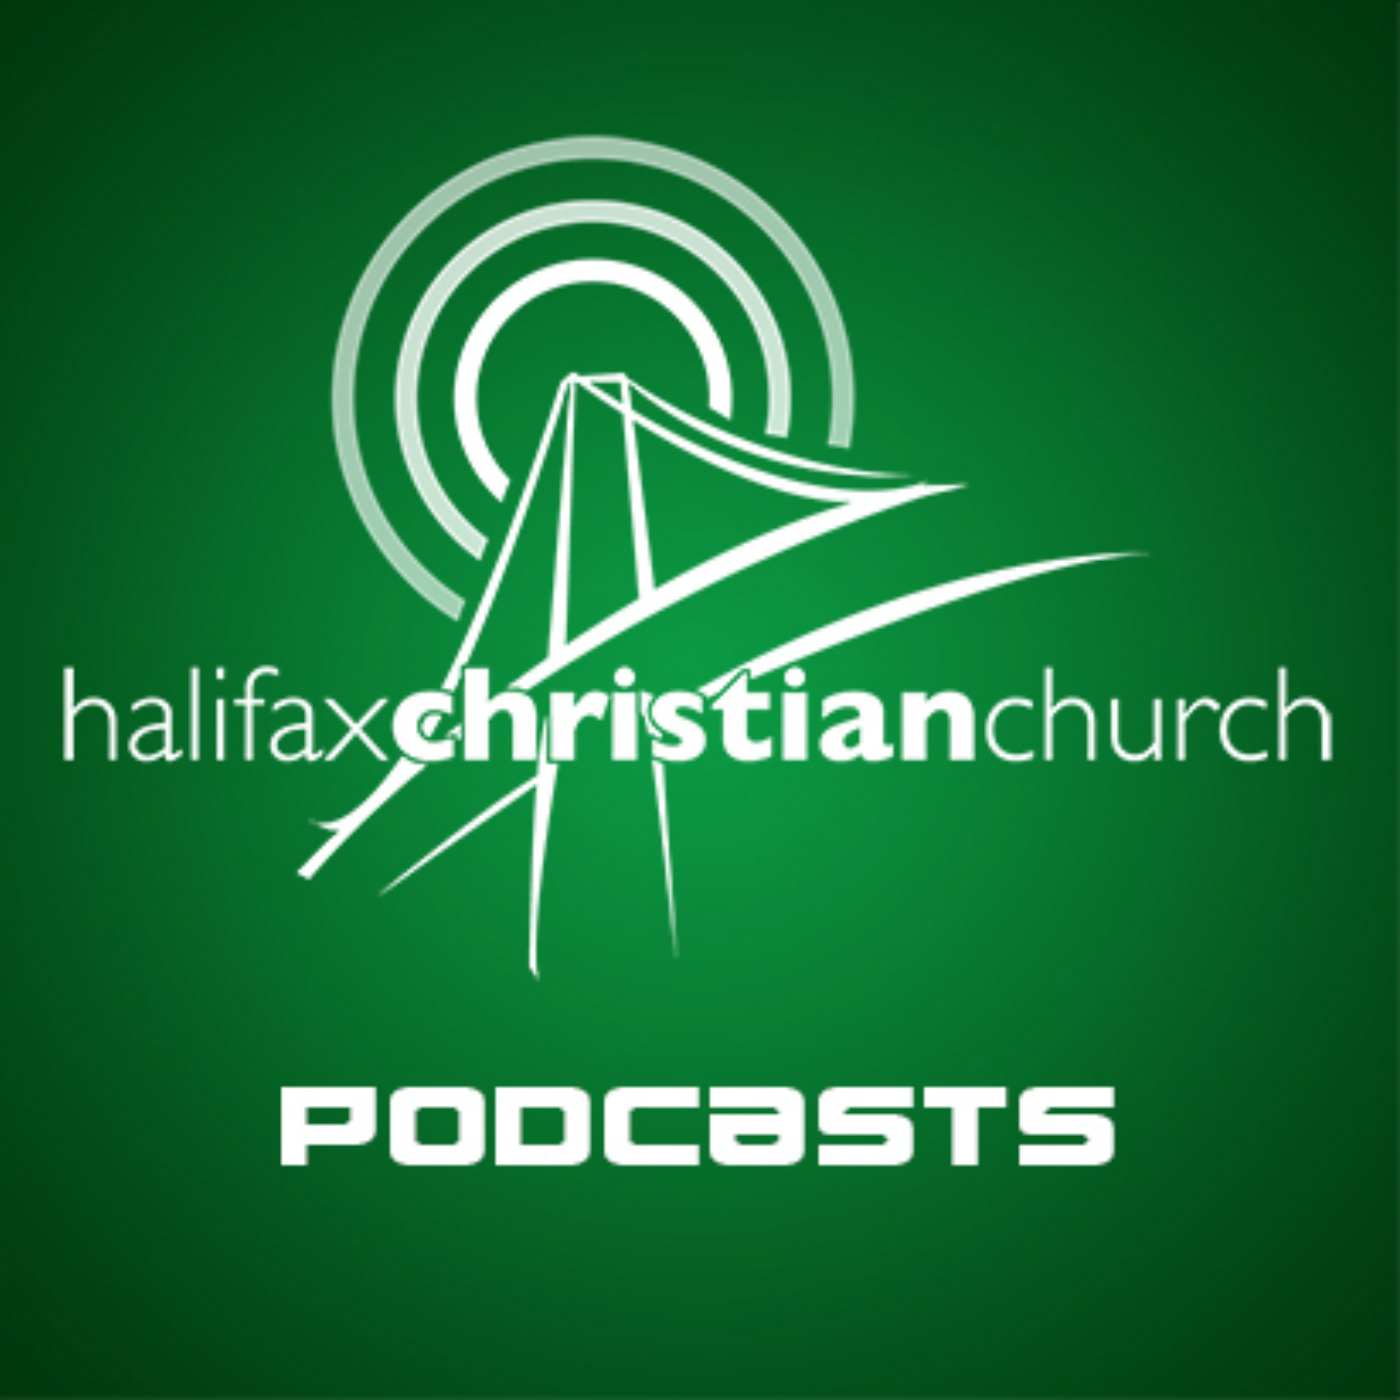 Halifax Christian Church